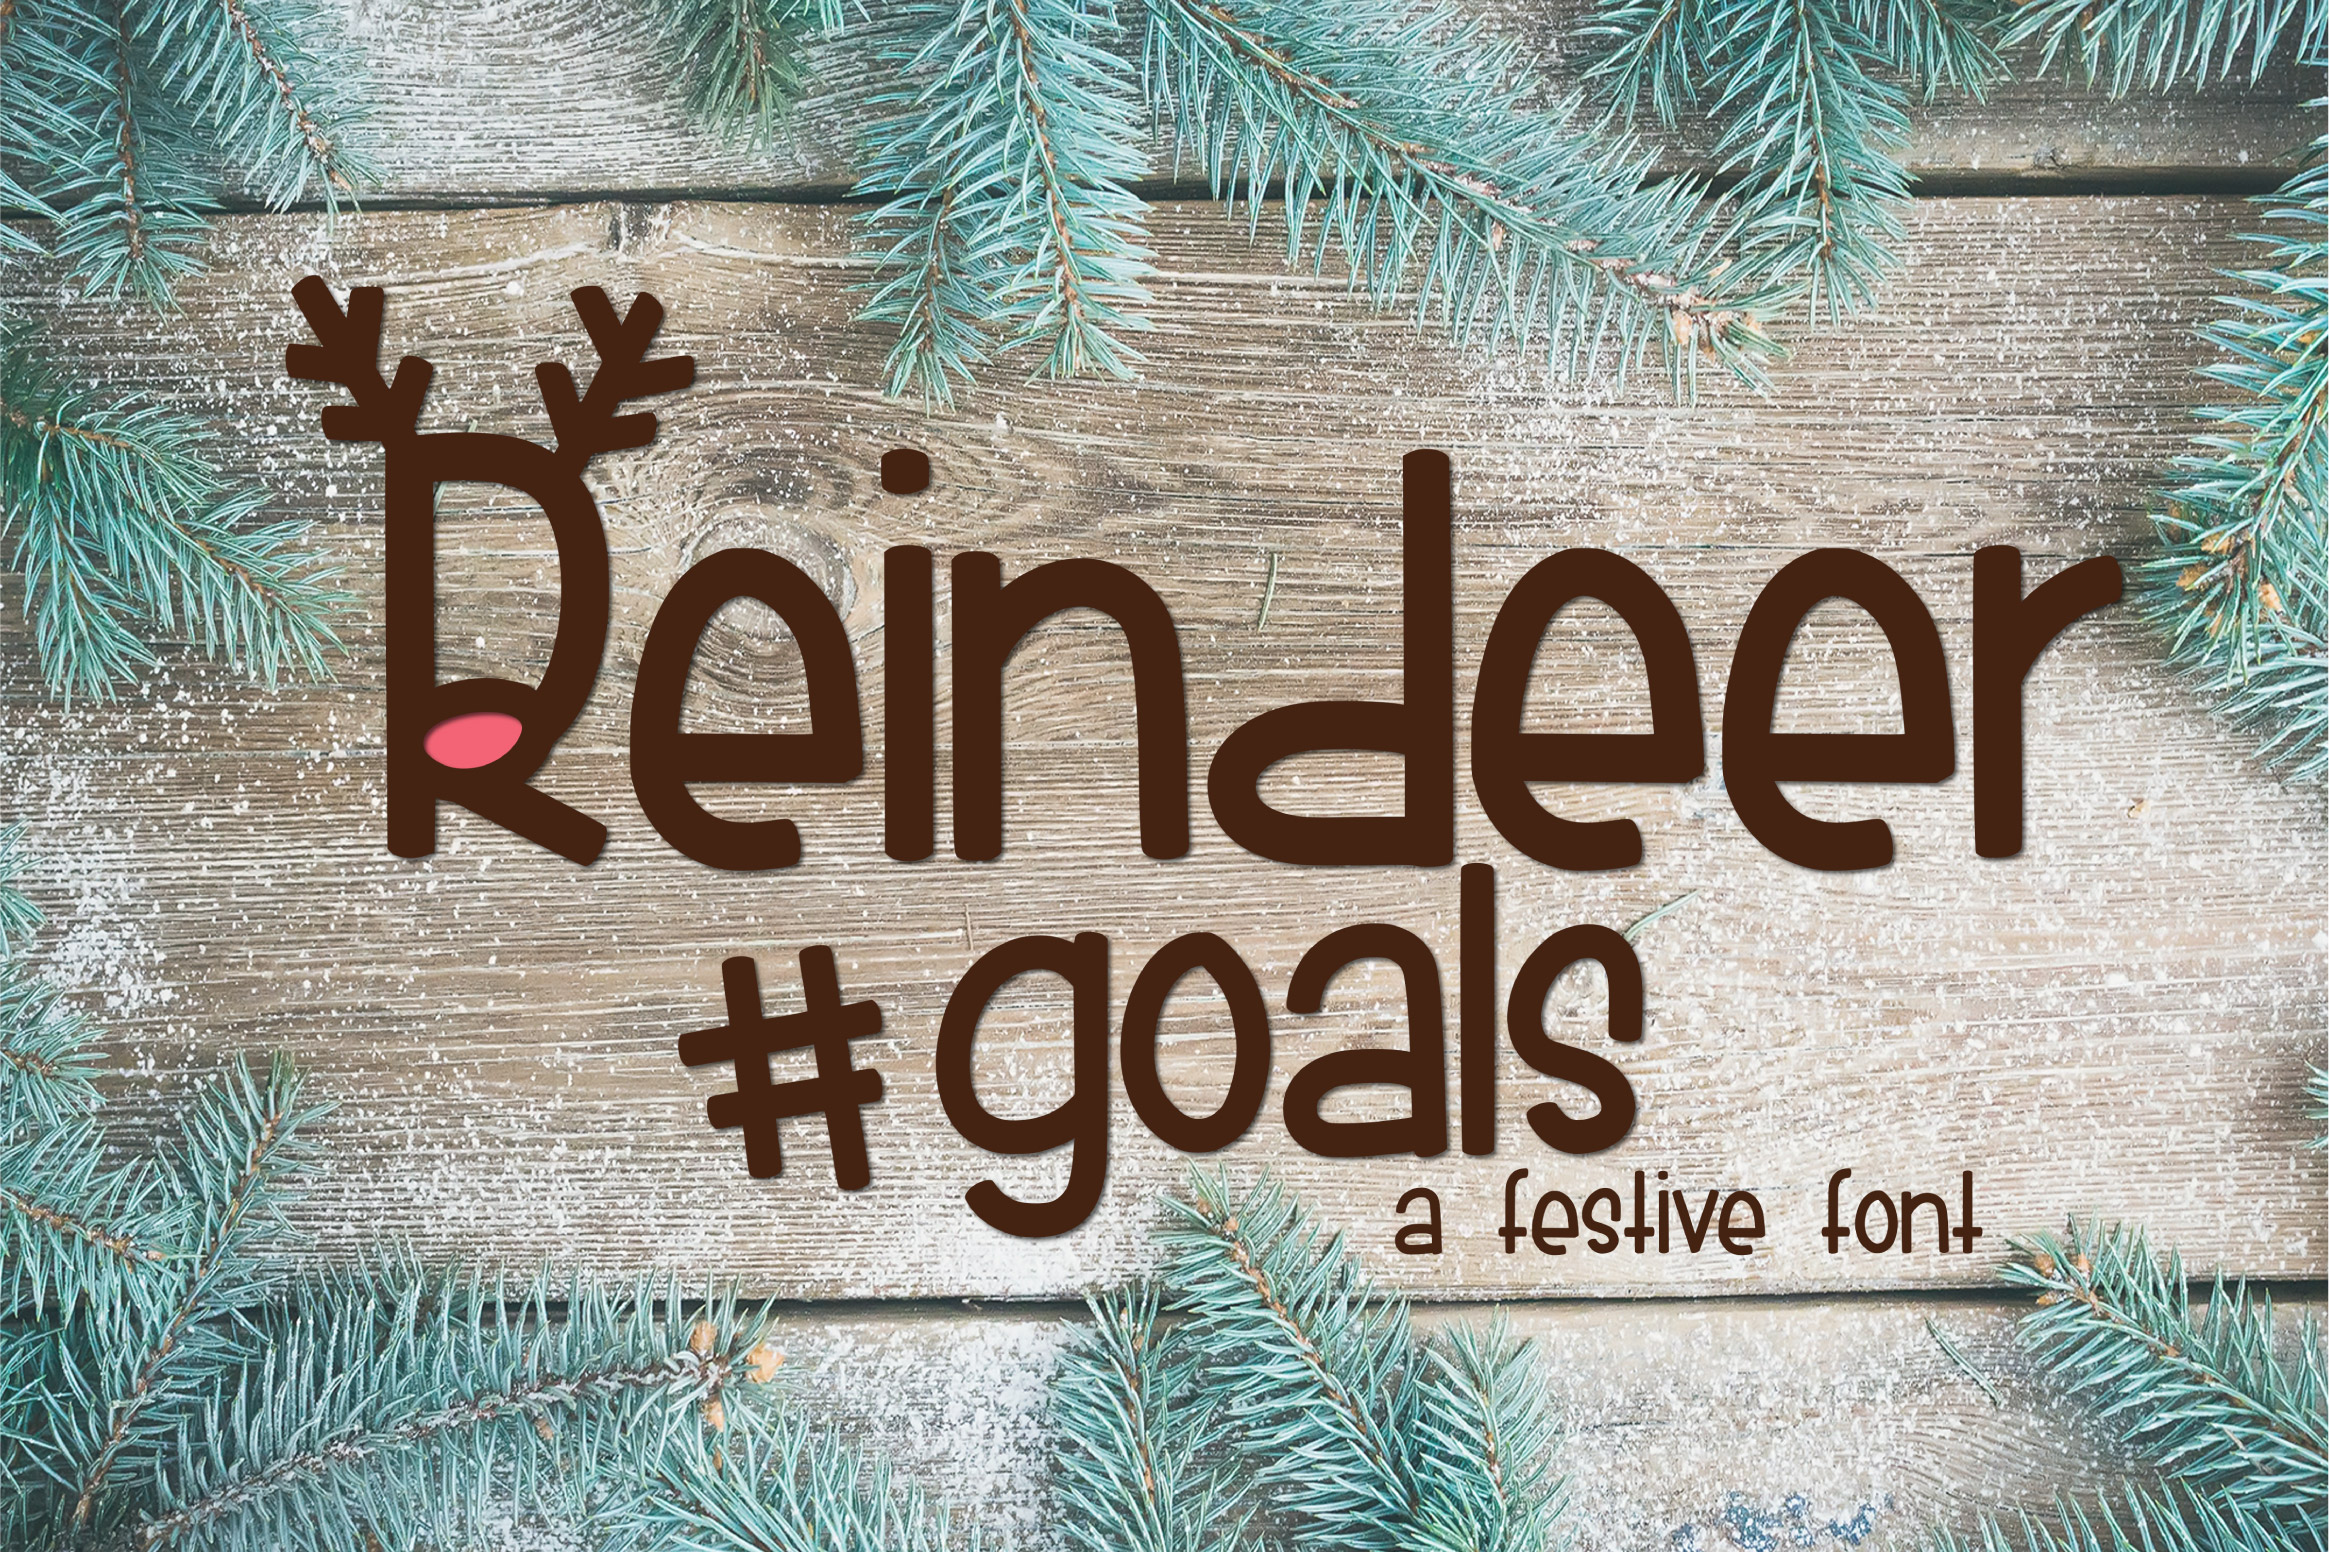 Reindeer Goals by Kitaleigh